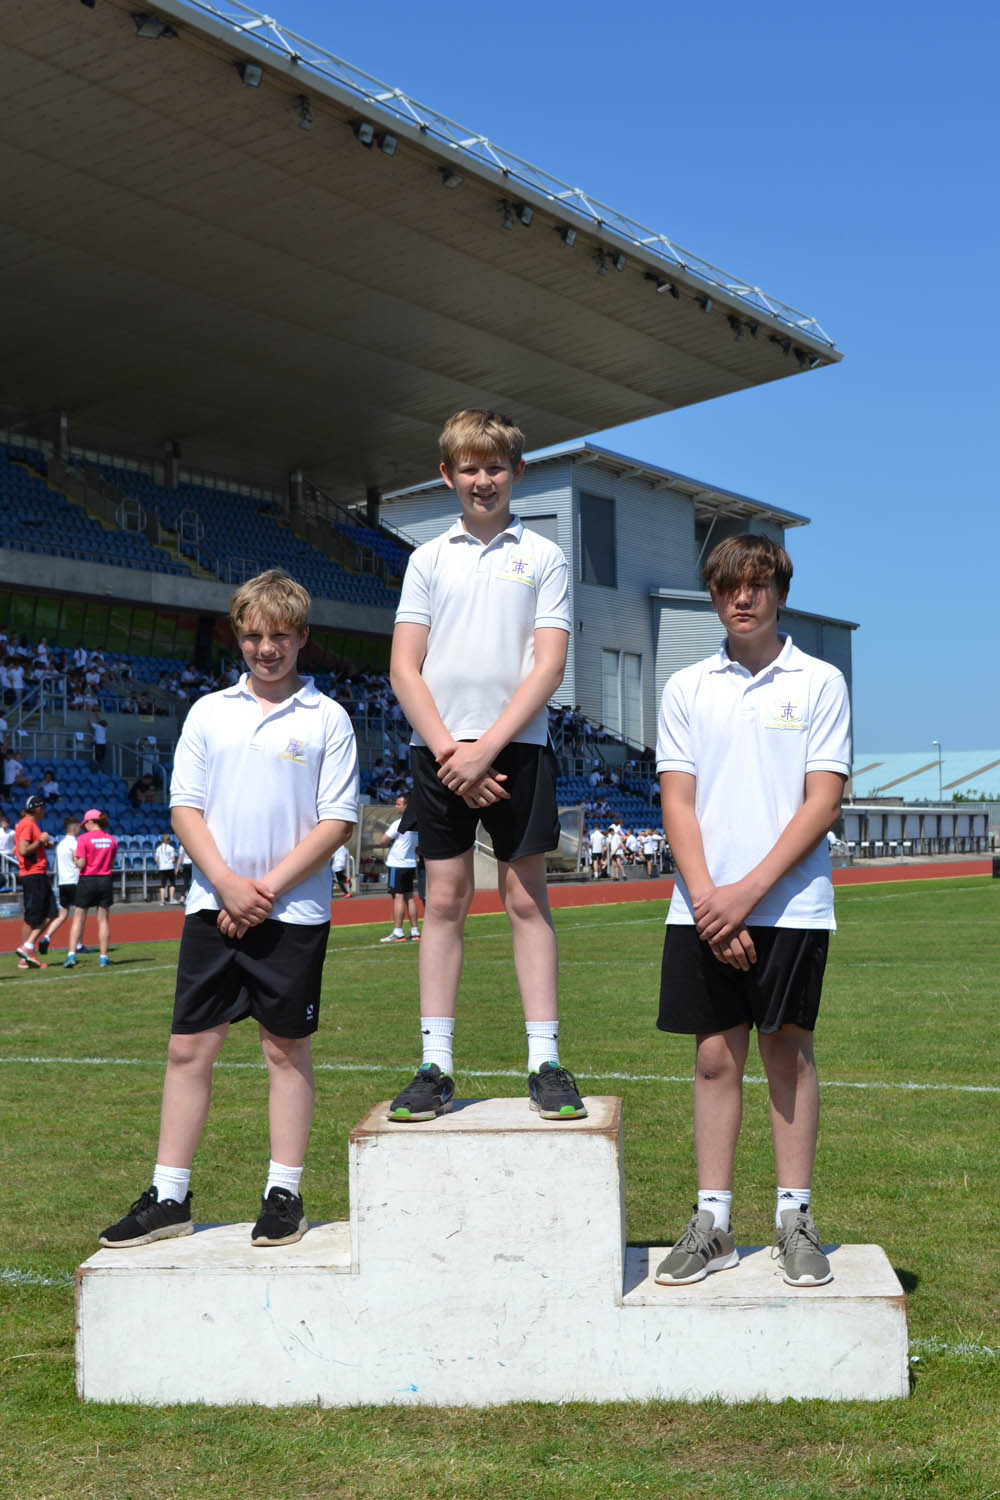 Year 8 Boys Javelin